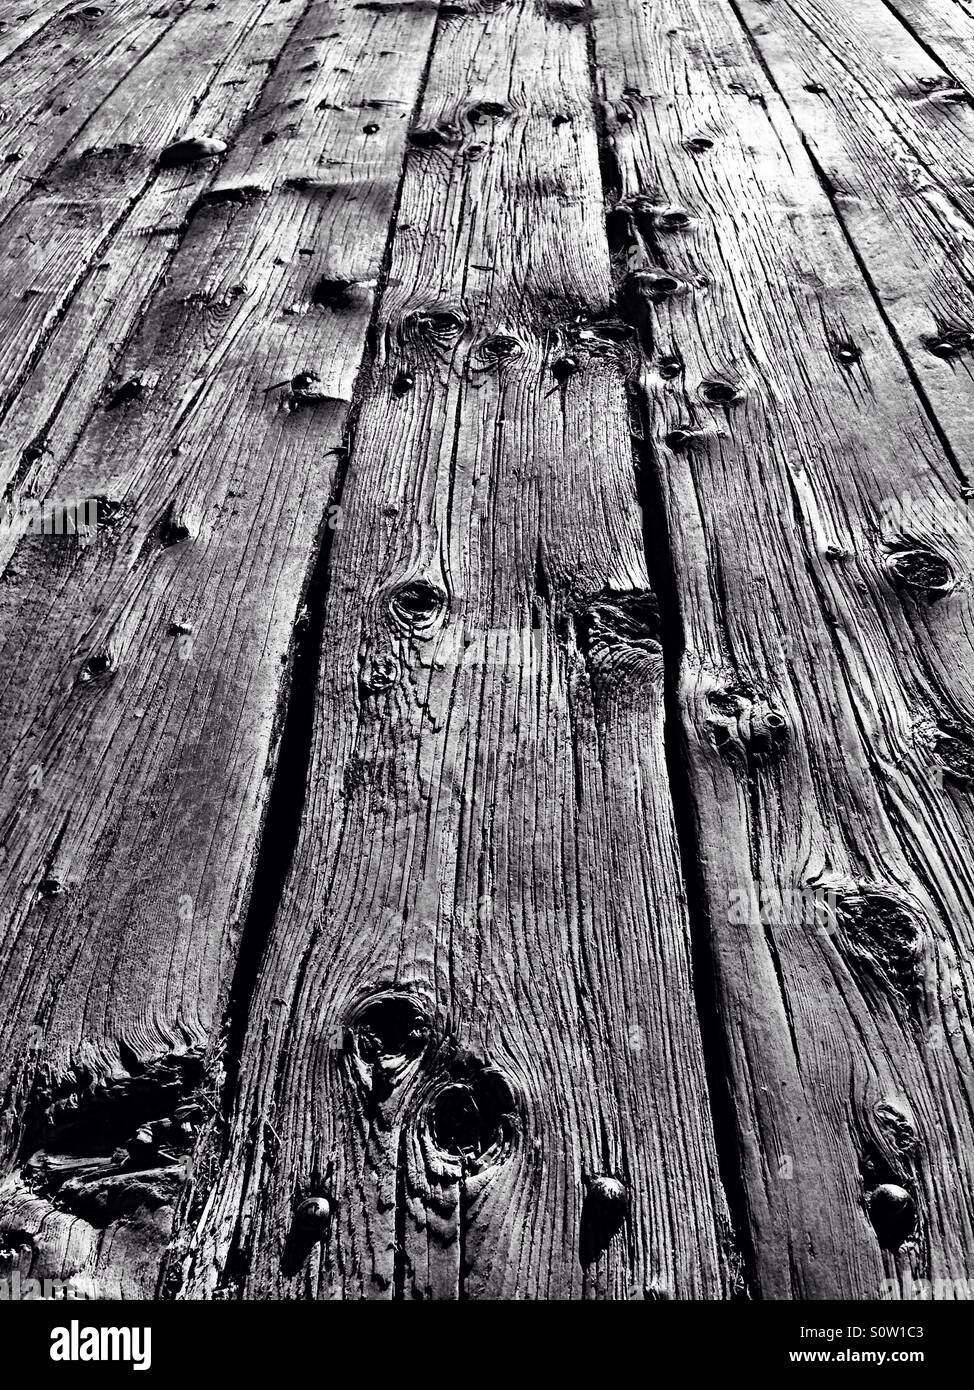 Sturdy boards on a pier - Stock Image